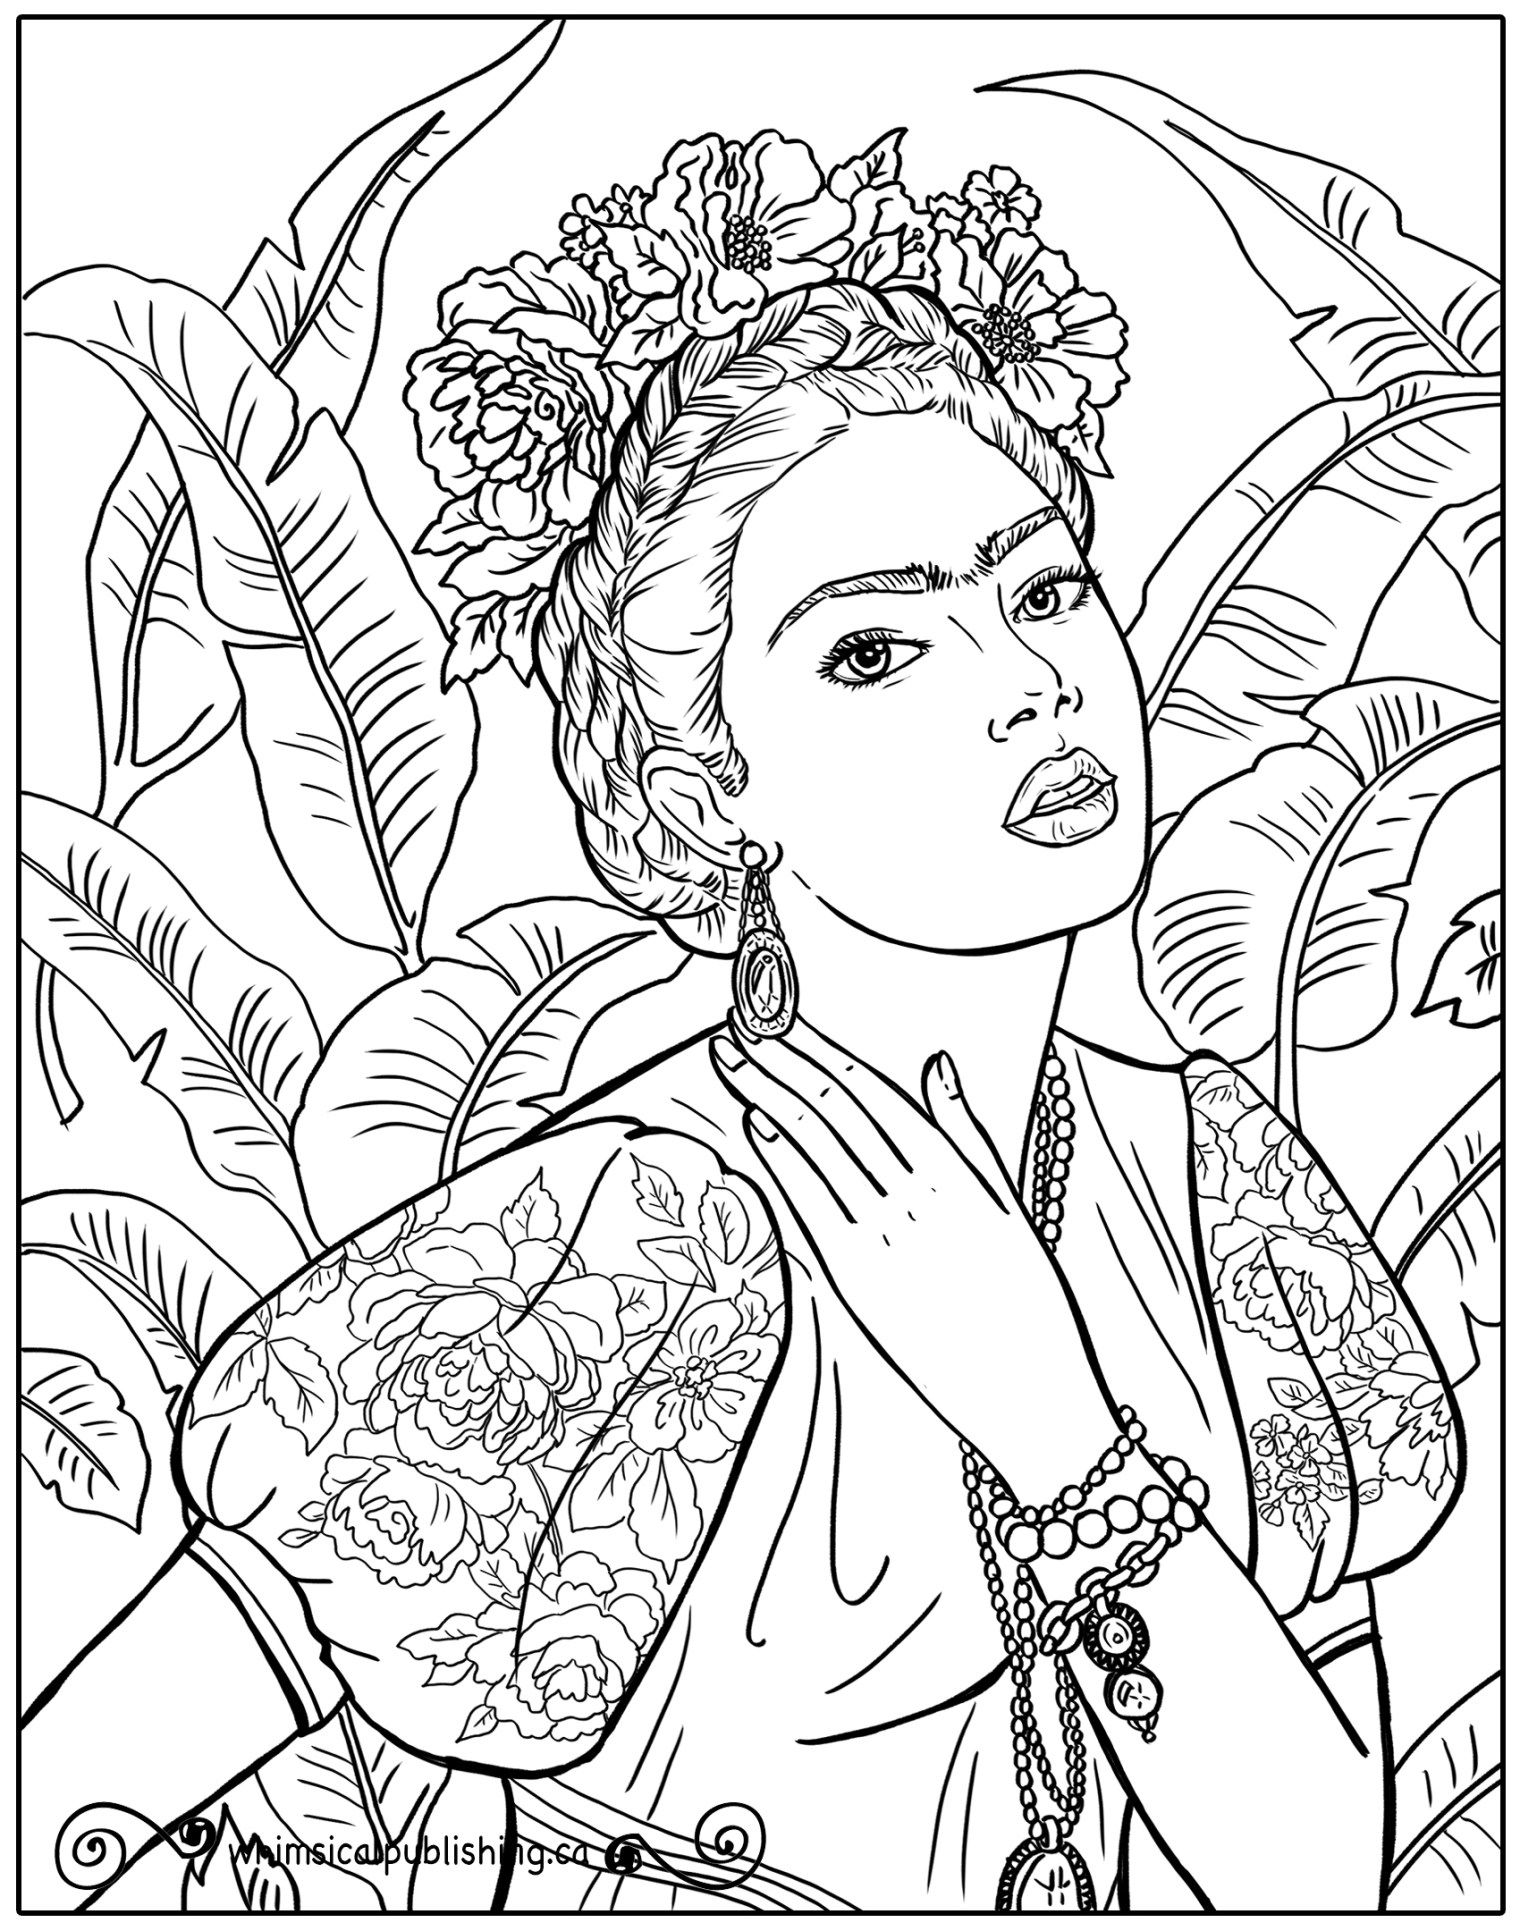 Free Colouring Pages Free Coloring Pages People Coloring Pages Colouring Pages [ 1931 x 1520 Pixel ]